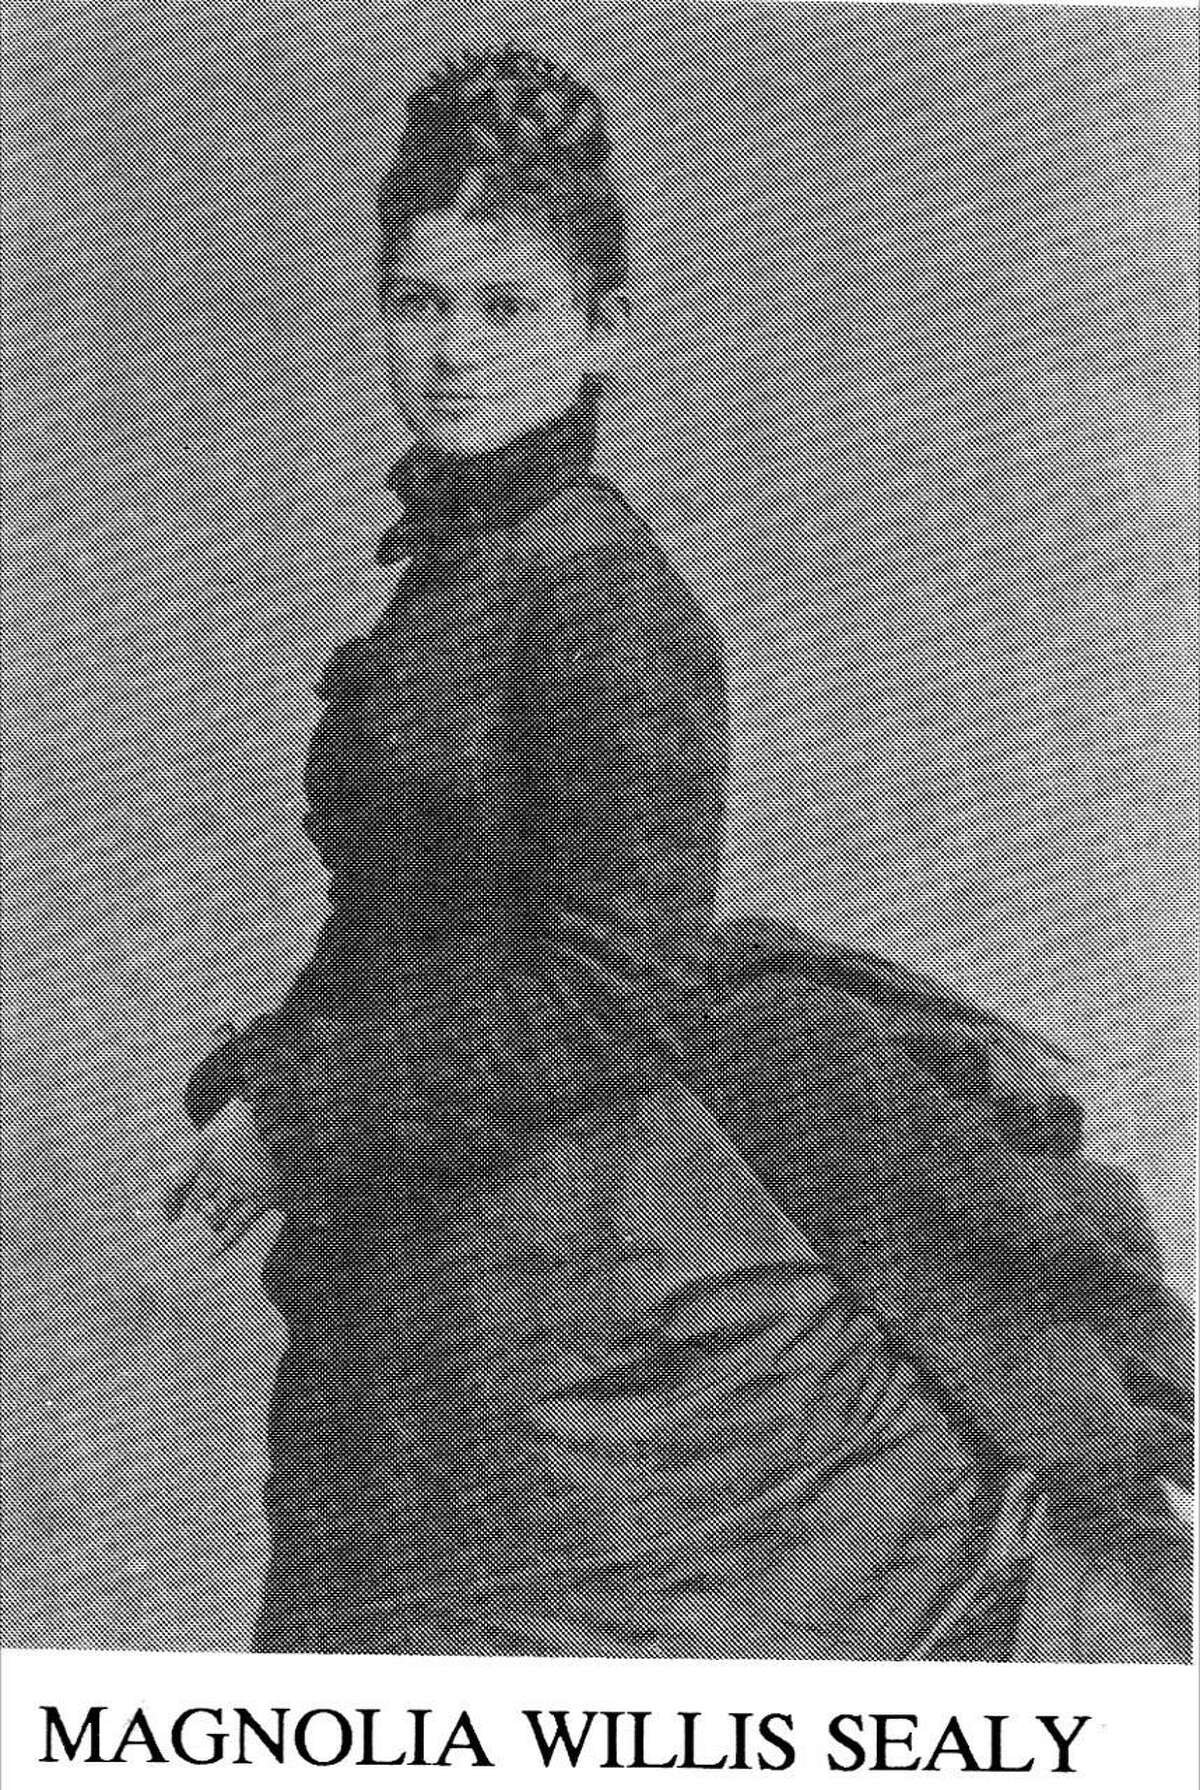 Magnolia Willis Sealy is pictured. In 1875 Magnolia Willis Sealy married George Sealy. George and his brother John Sealy were wealthy Galveston businessmen with extensive interests in cotton, banking, and railroads. It is generally believed that the Magnolia Petroleum Company, owned by John's son John Hutchings Sealy, was named for his aunt Magnolia Willis Sealy. That company would later merge into the Mobil Oil Corporation, and today it is Exxon-Mobil.